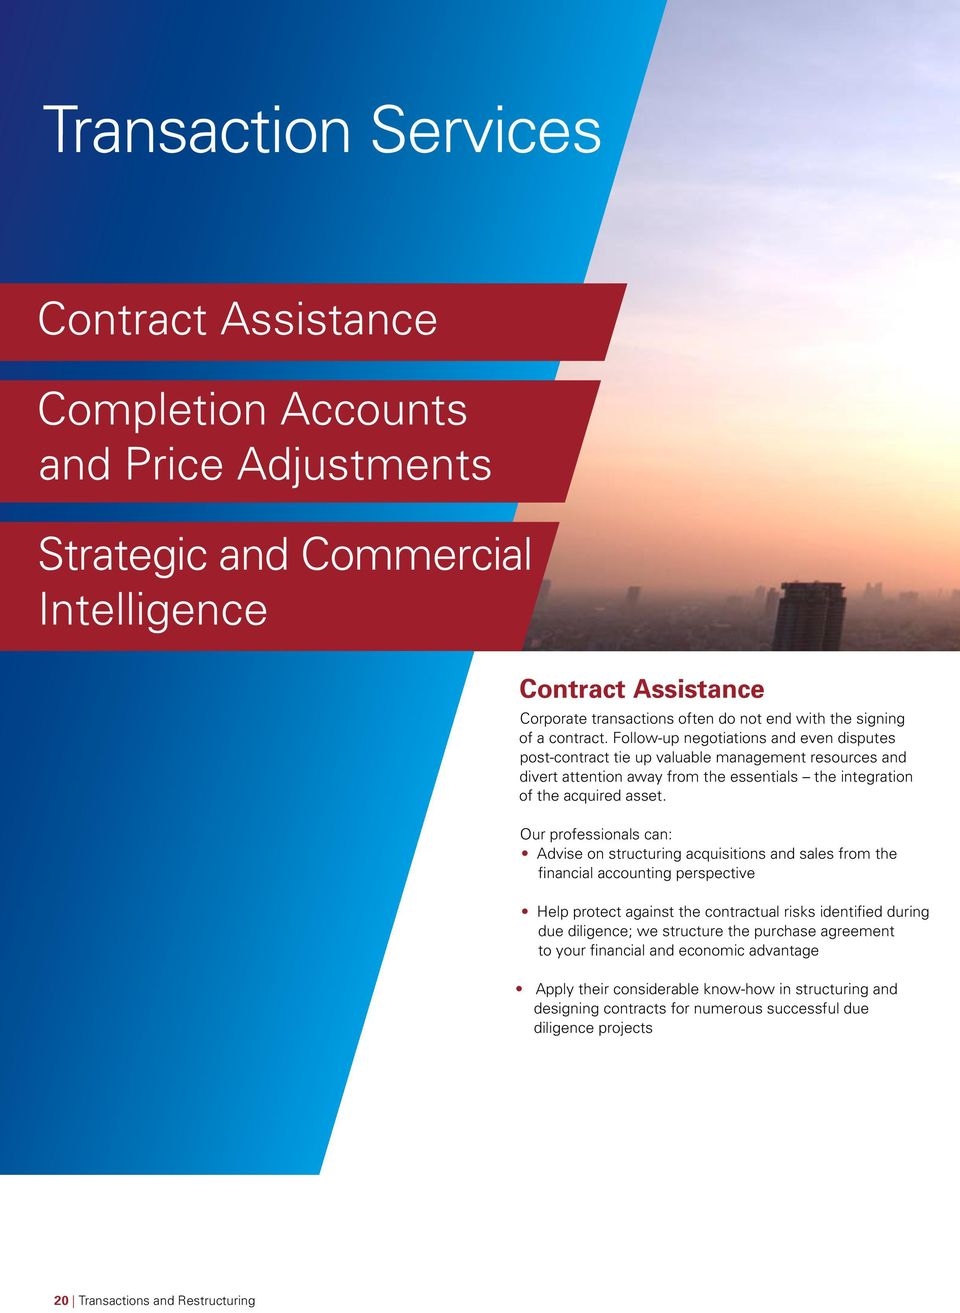 Our professionals can: Advise on structuring acquisitions and sales from the financial accounting perspective Help protect against the contractual risks identified during due diligence; we structure